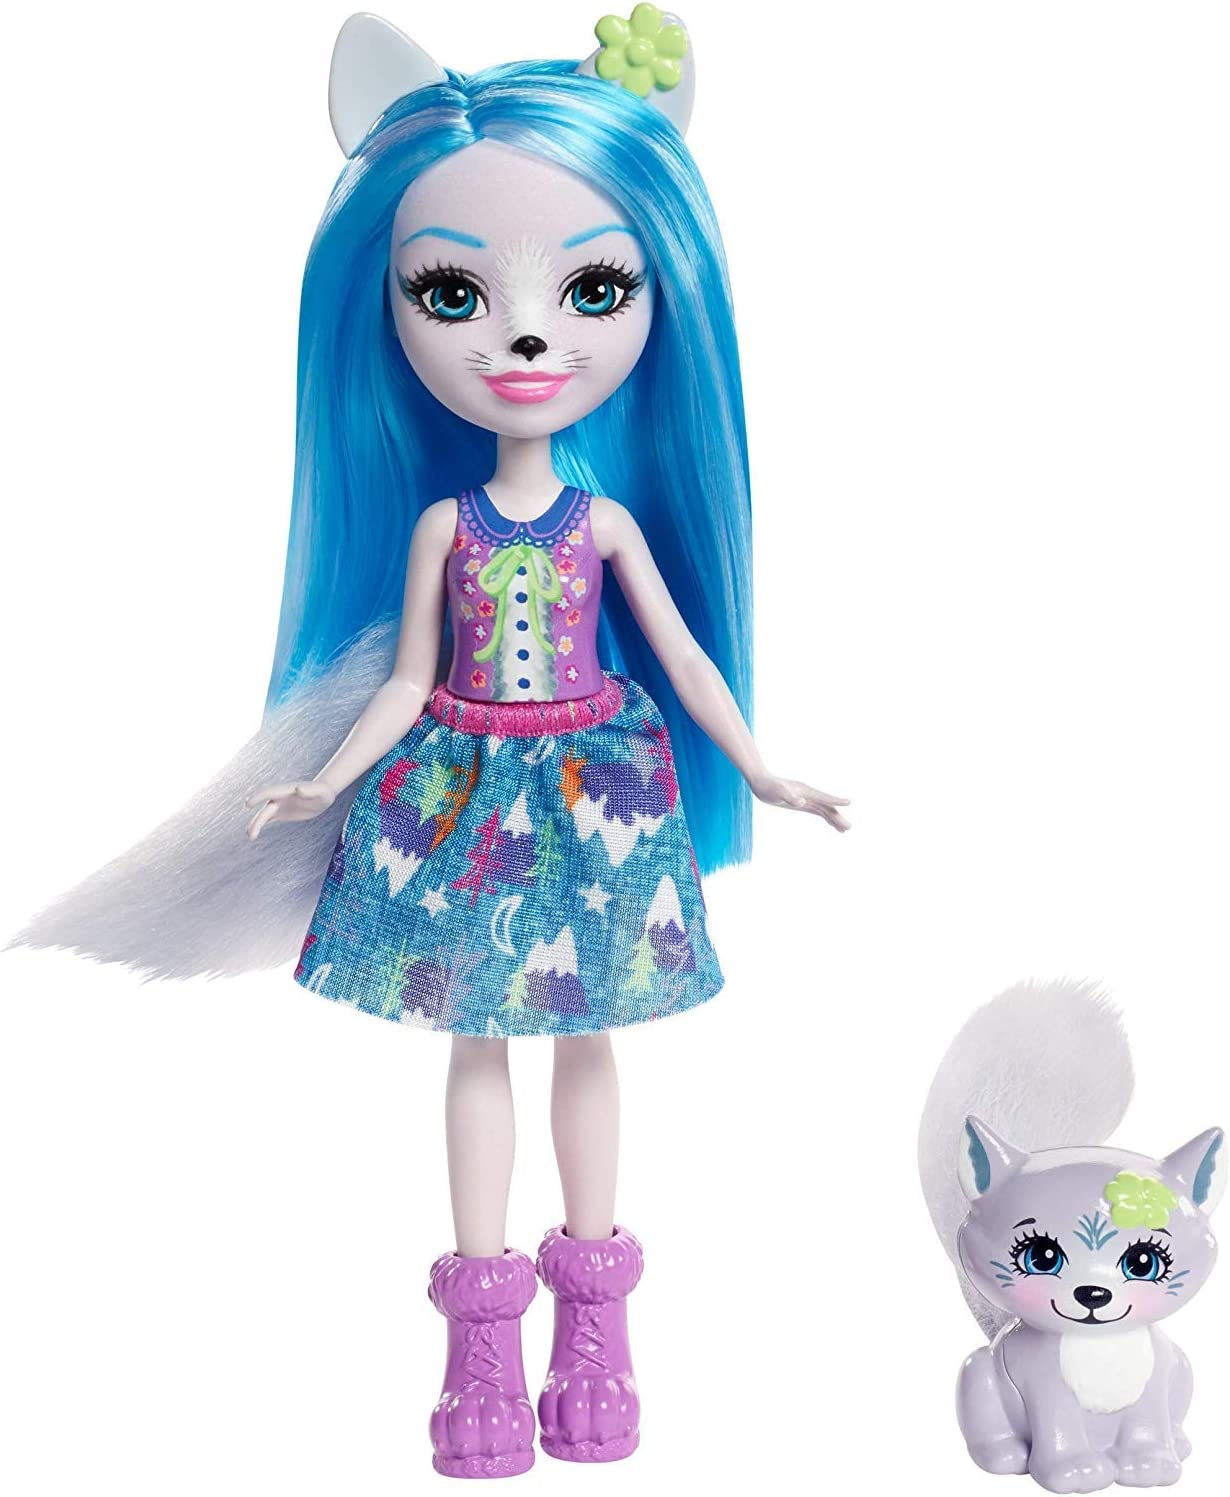 Enchantimals Winsley Wolf Doll (6-in) and Trooper Animal Friend [Amazon Exclusive]